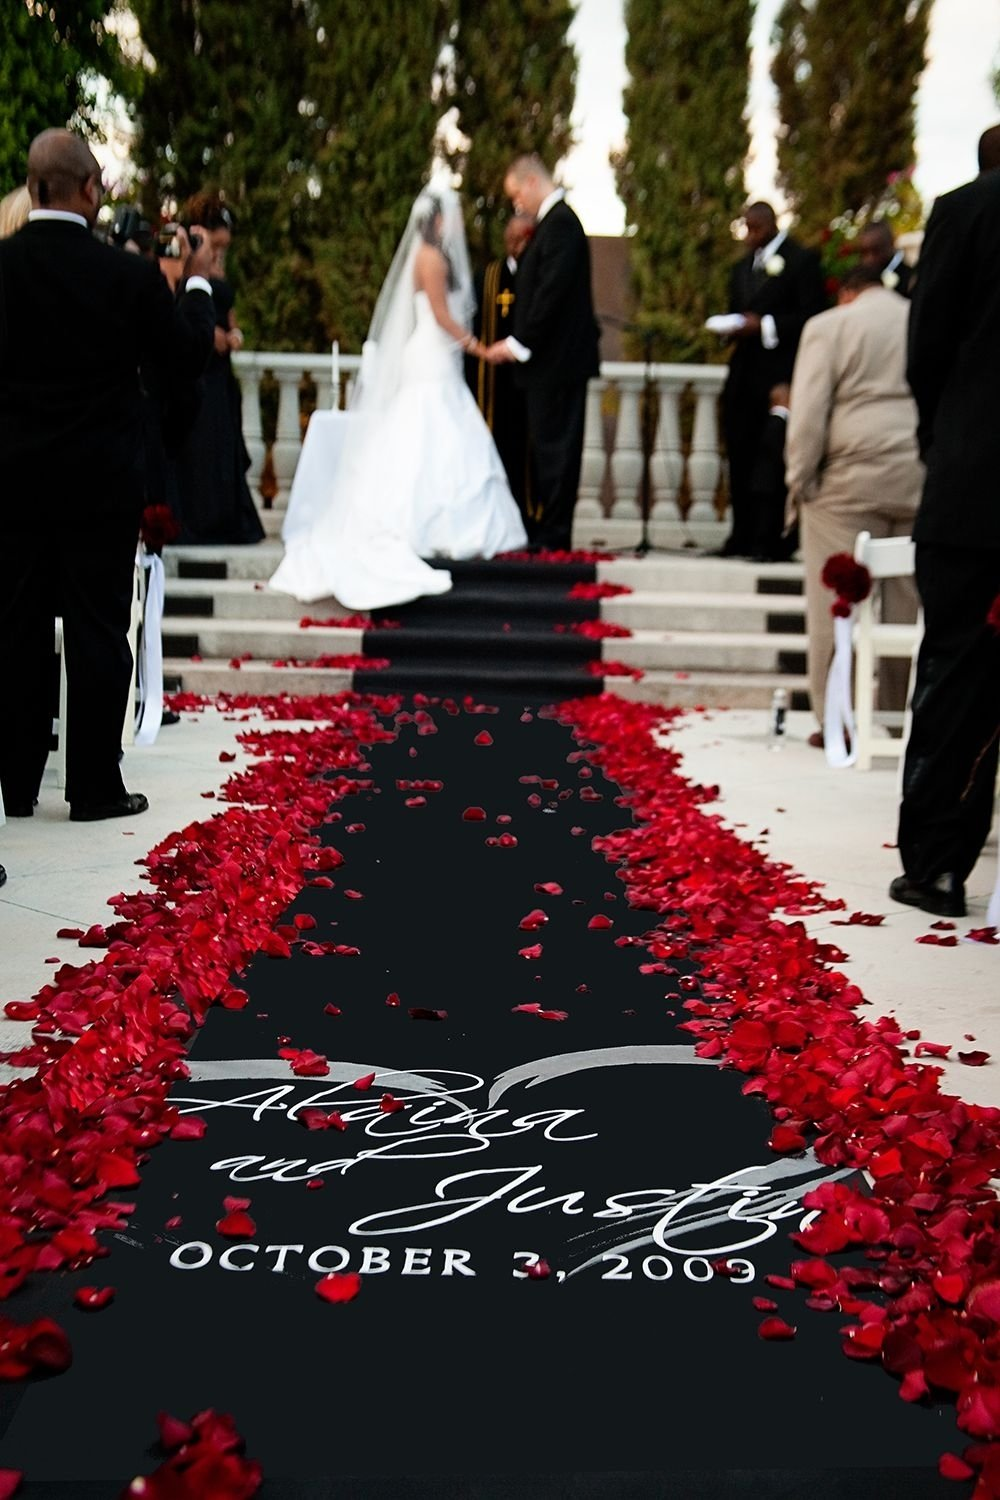 10 Fabulous Red Black And White Wedding Ideas black and red wedding ideas wedding ideas pinterest red